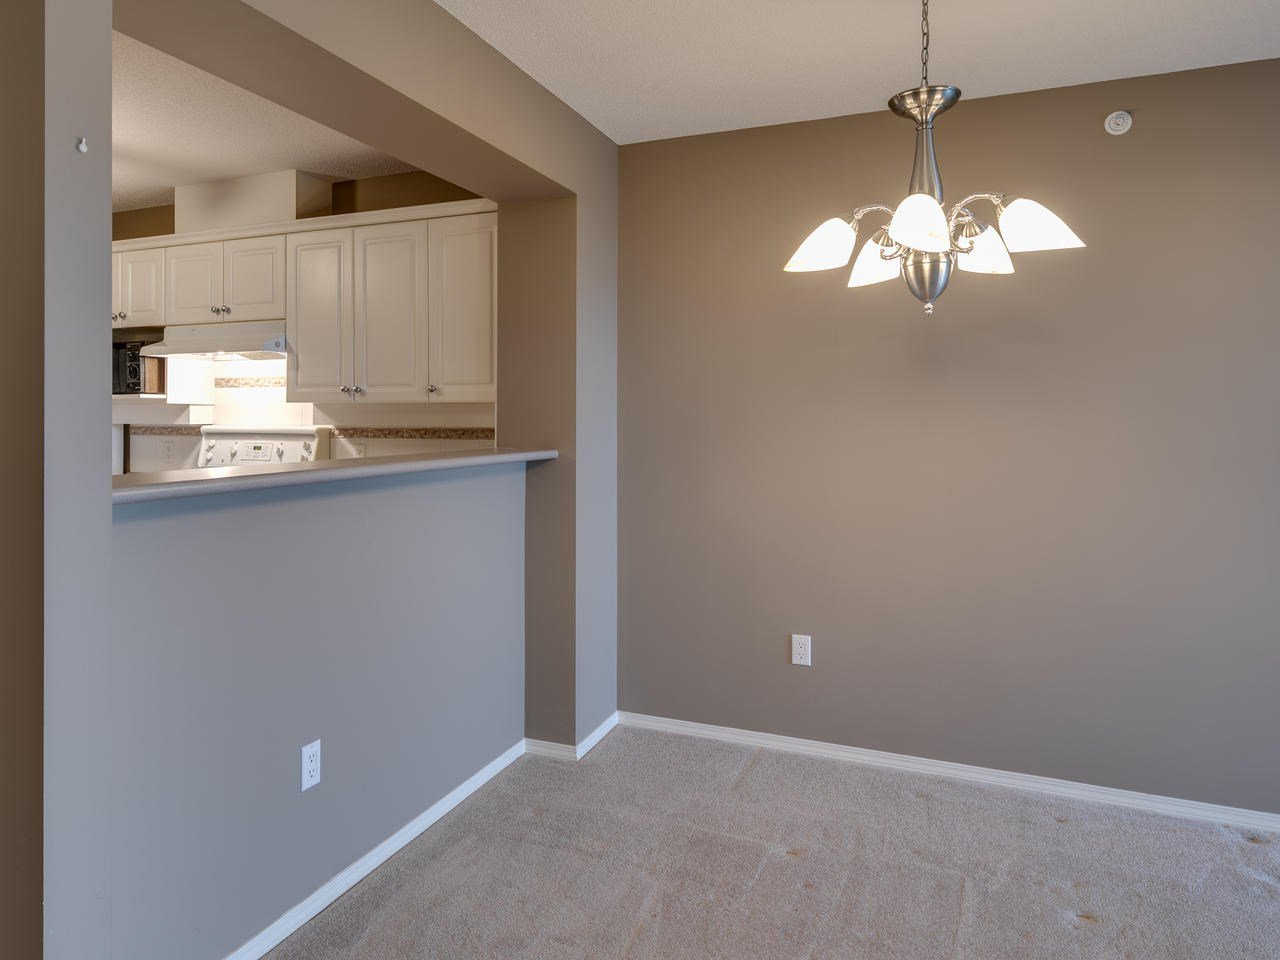 """Photo 16: Photos: 404 12148 224 Street in Maple Ridge: East Central Condo for sale in """"Panorama"""" : MLS®# R2461995"""